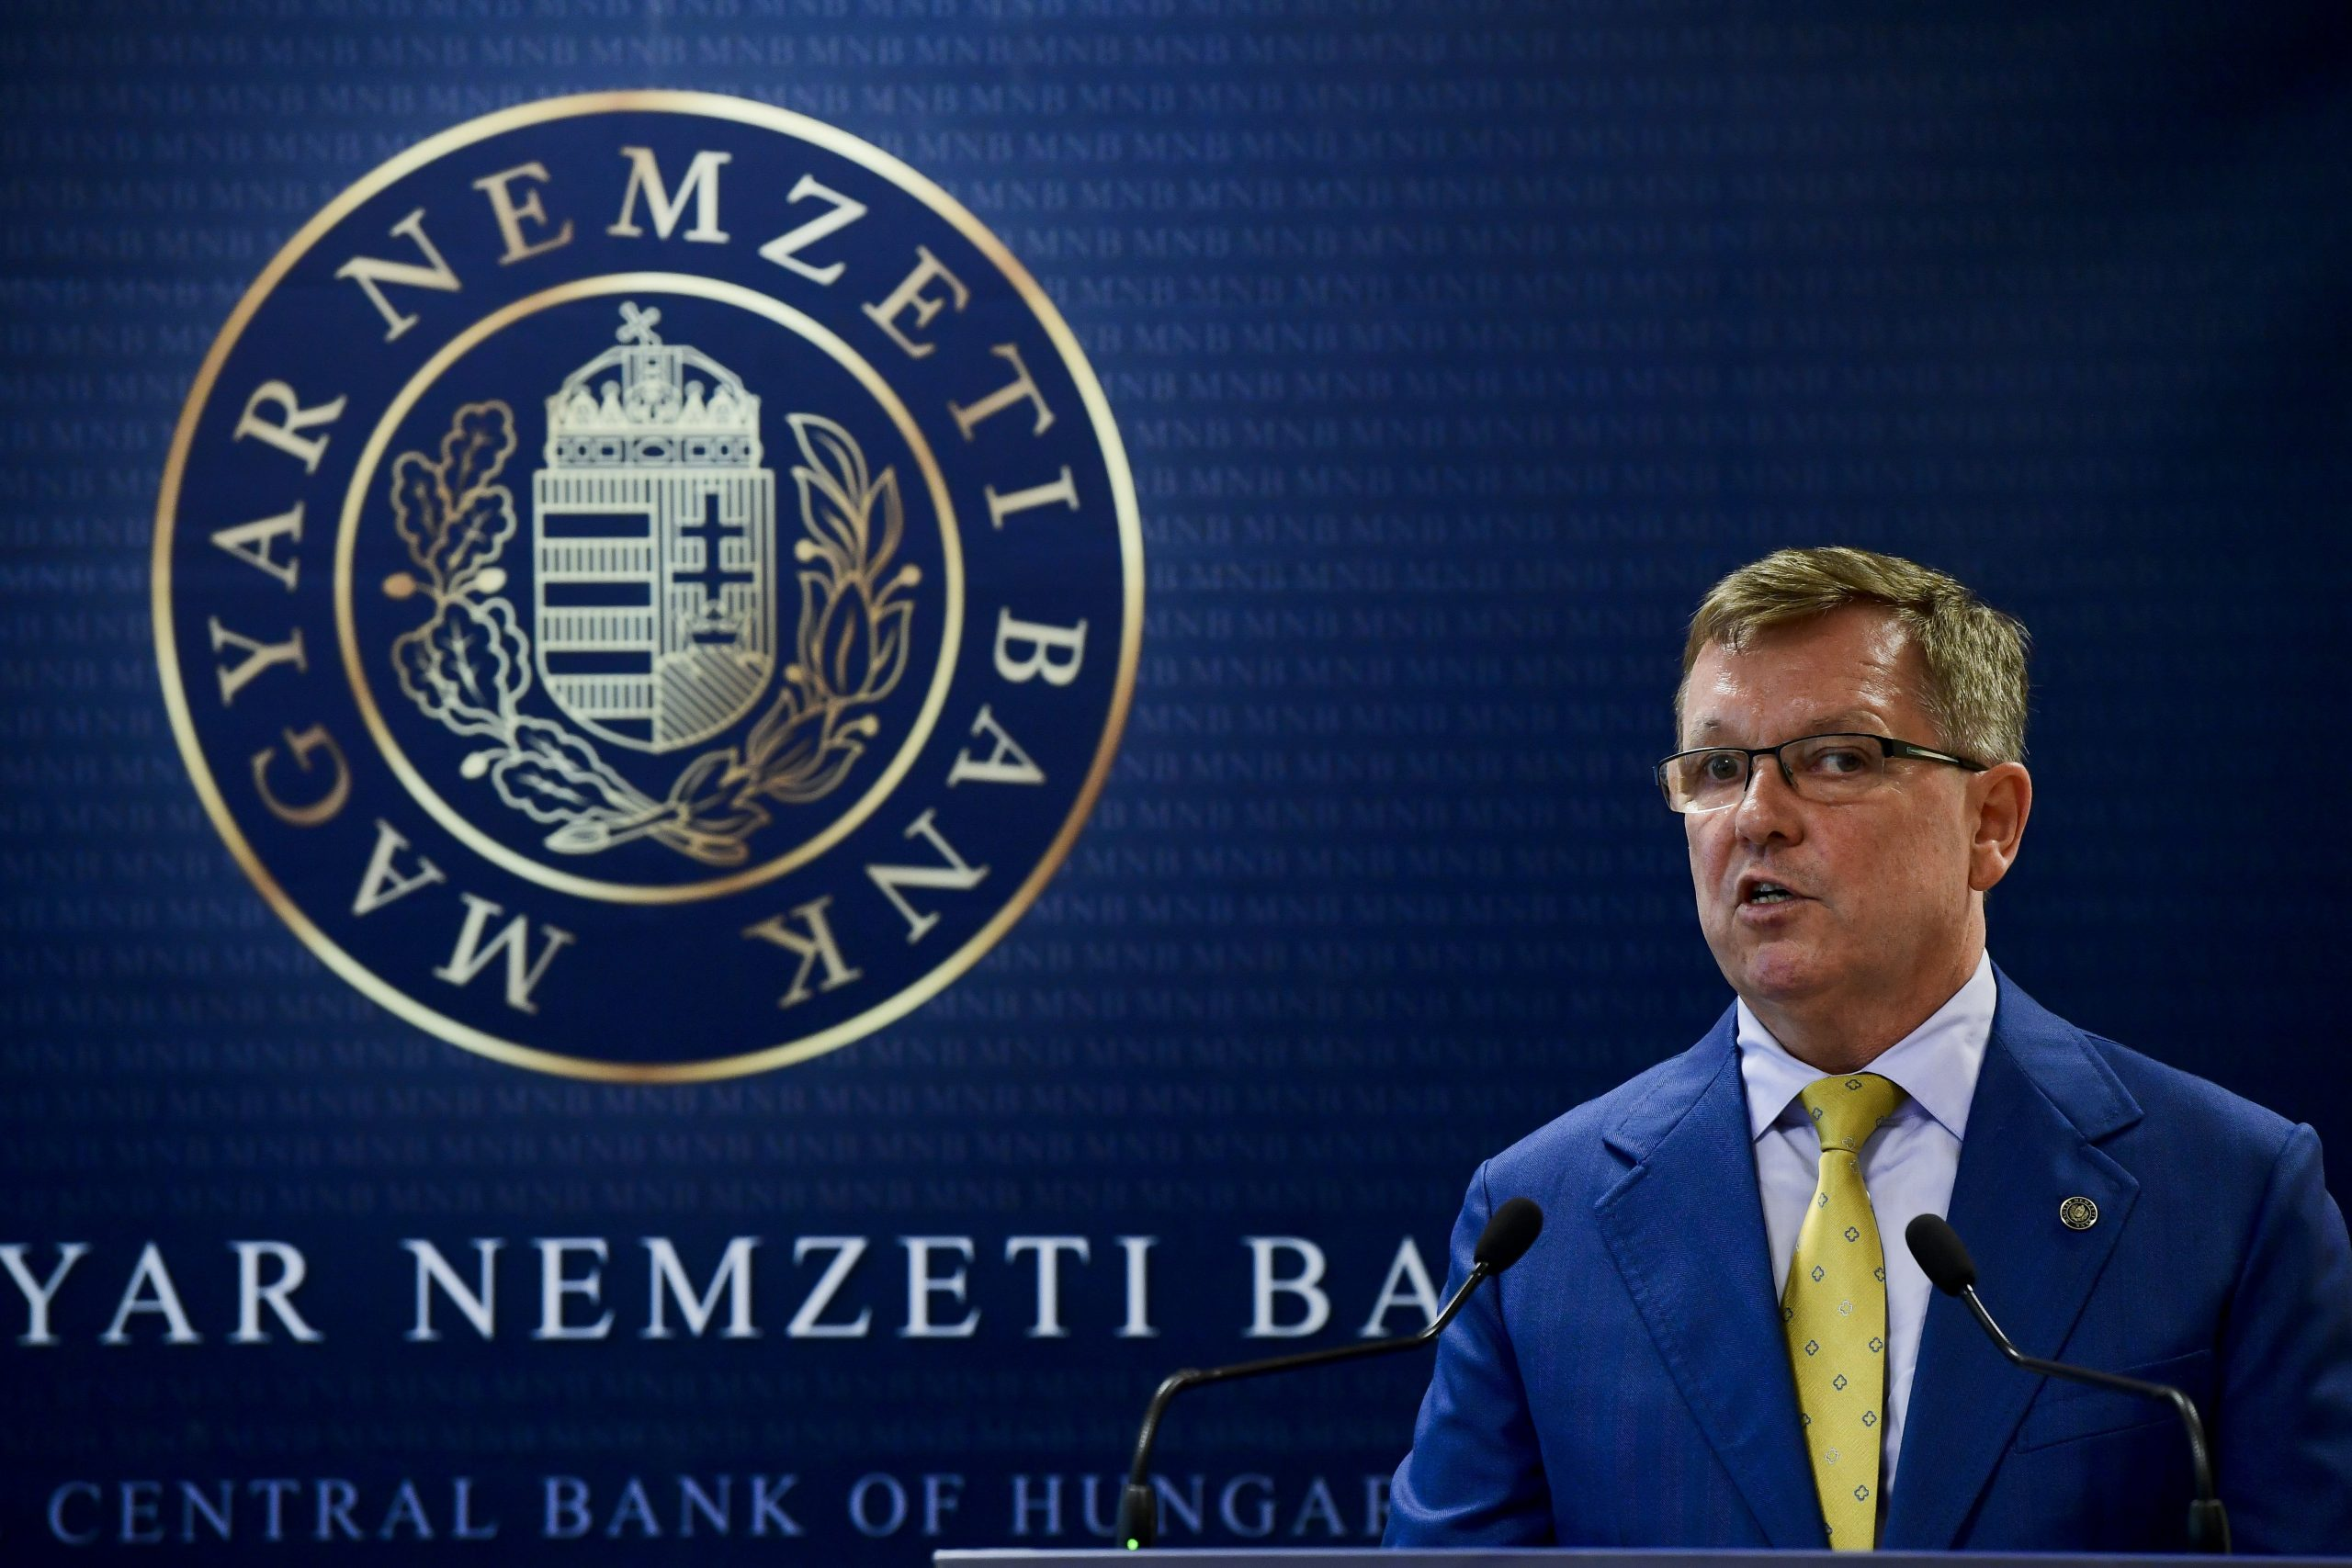 Central Bank Head: Govt's Economic Recovery Strategy Over-reliant on 'Steel and Concrete'